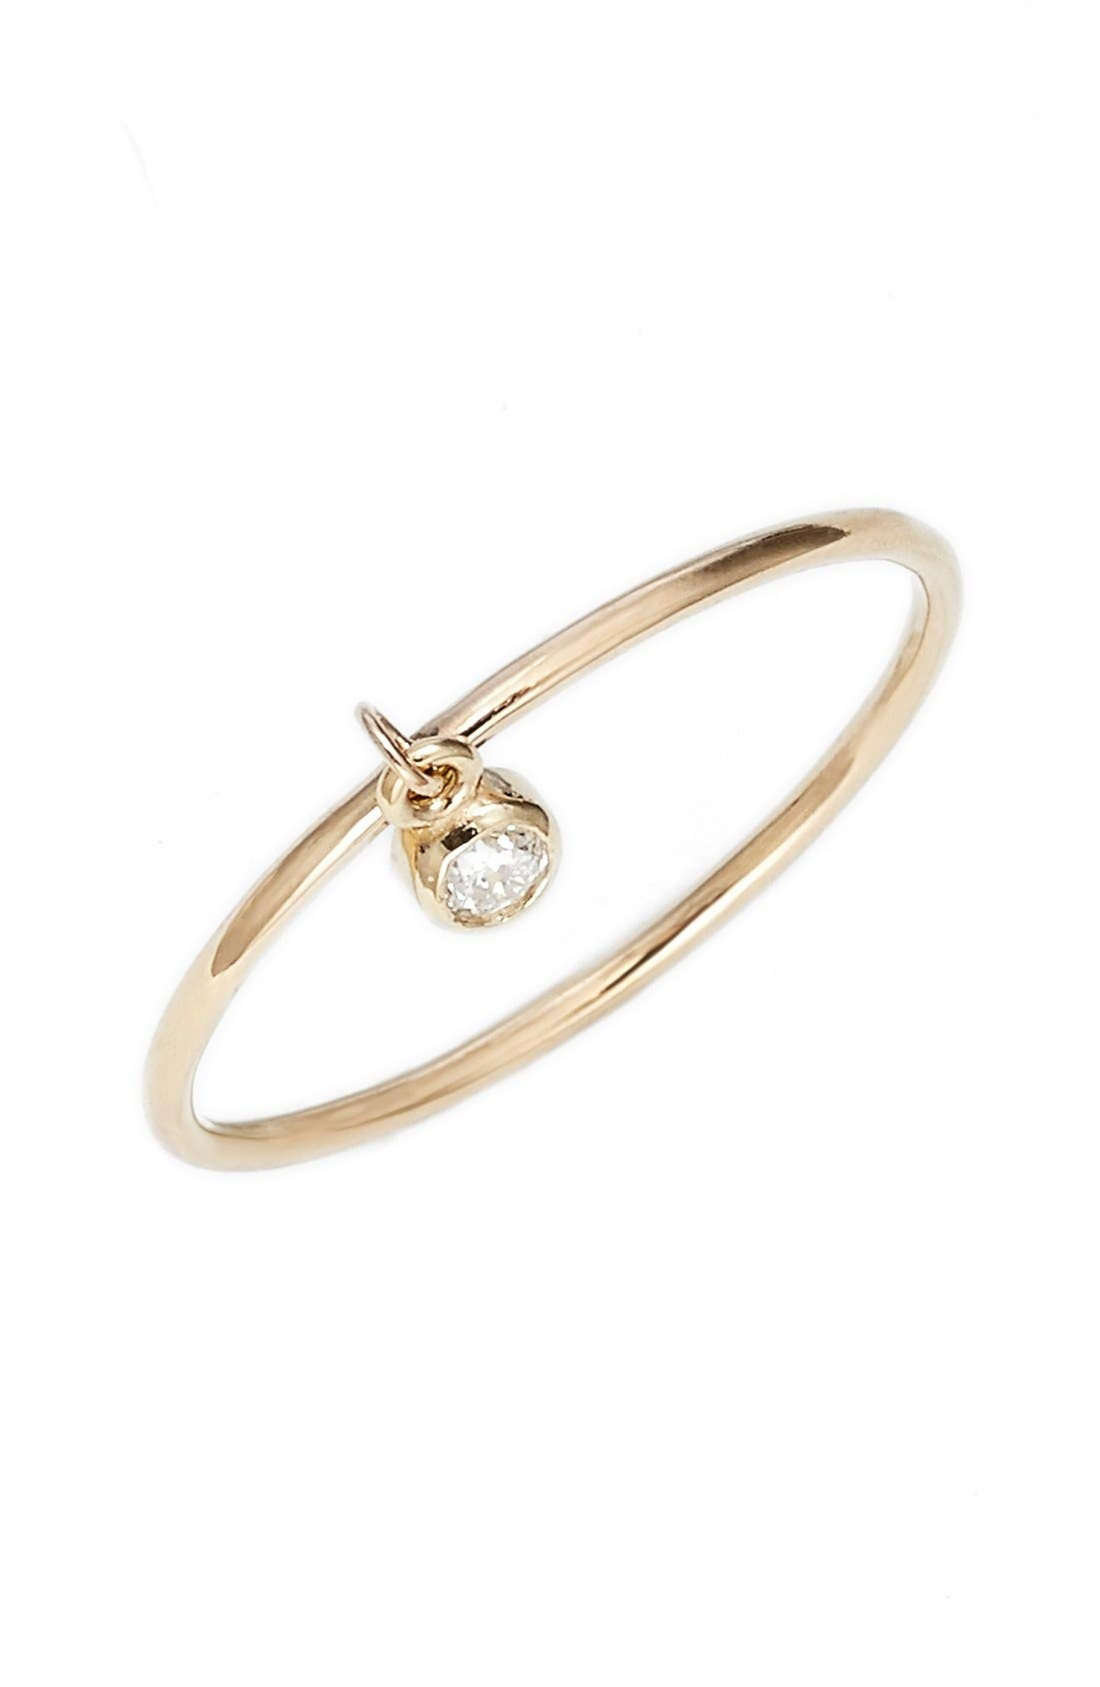 ZOË CHICCO Dangling Diamond Ring, Main, color, YELLOW GOLD